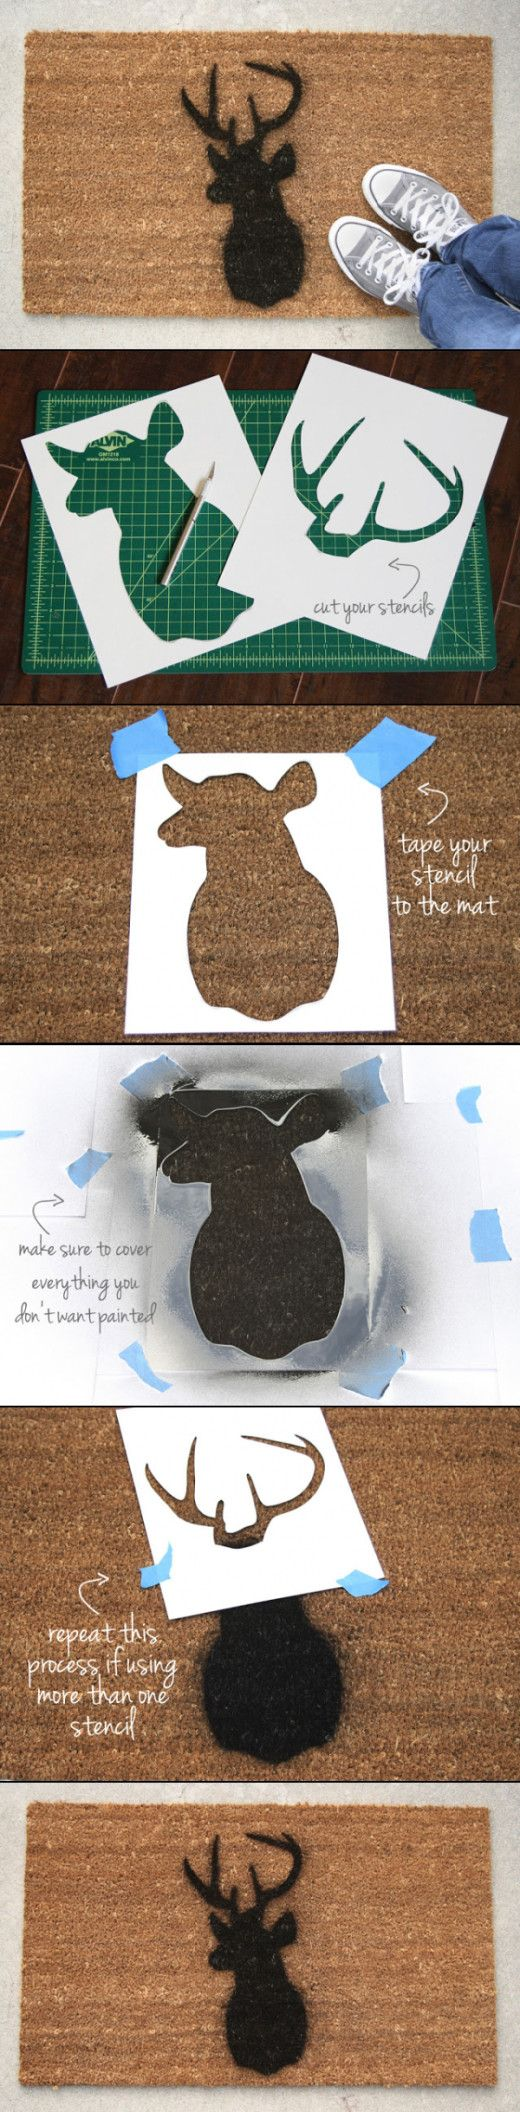 DIY Sillhouette Doormat...this would be so easy and cheap to do...(not the deer, though...at least not for me).